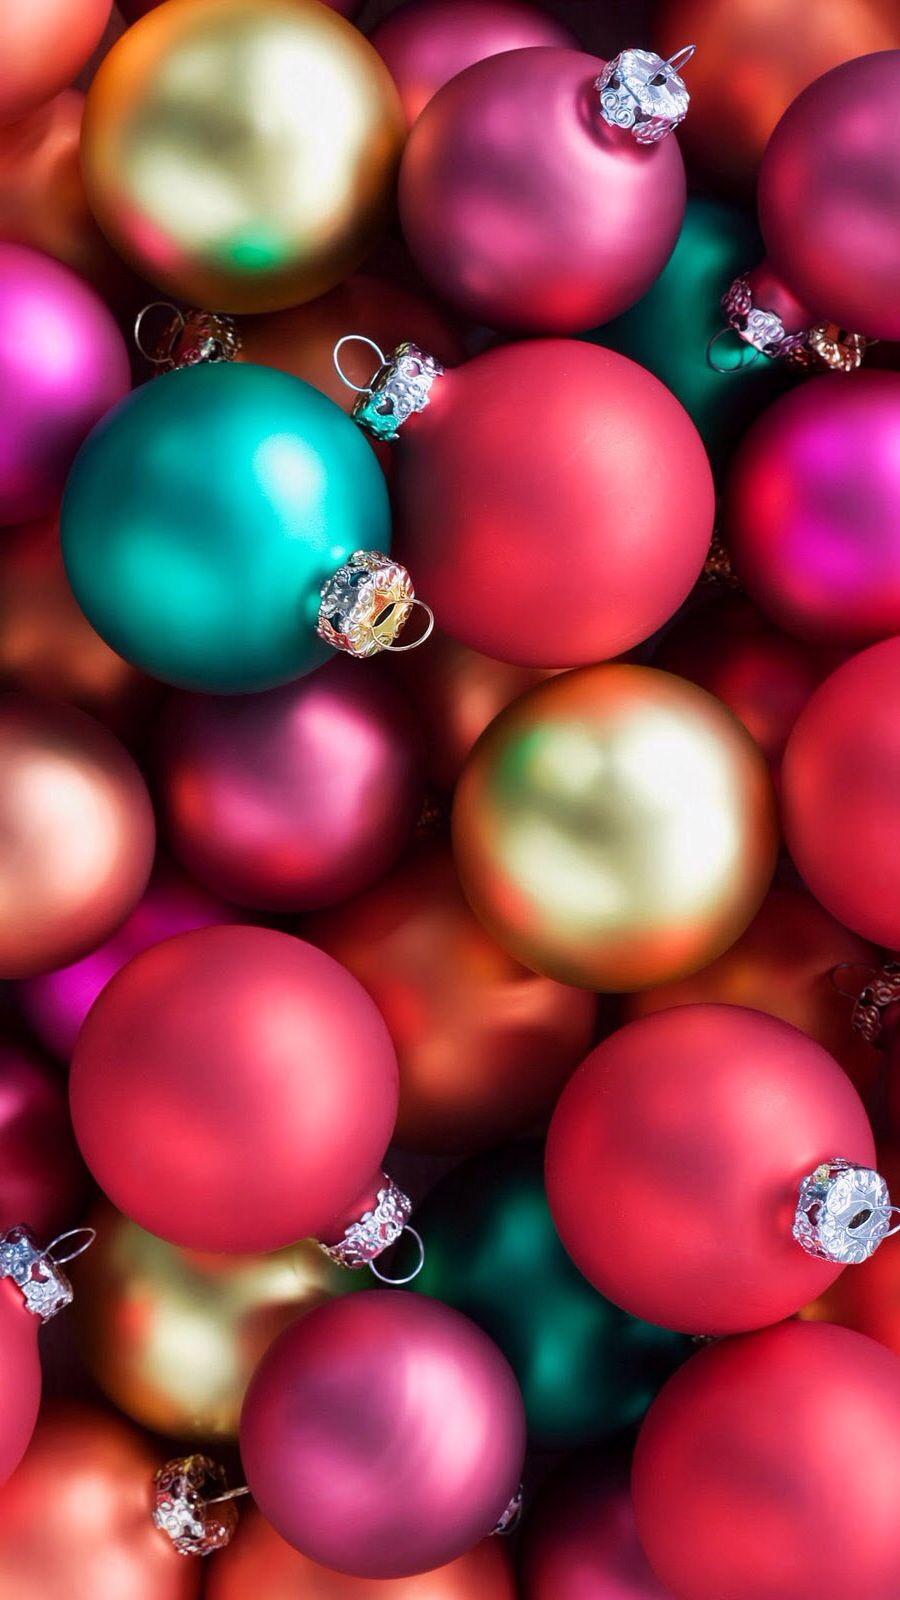 Christmas ornaments iphone background | Backgrounds ... Christmas Ornaments Iphone Wallpaper